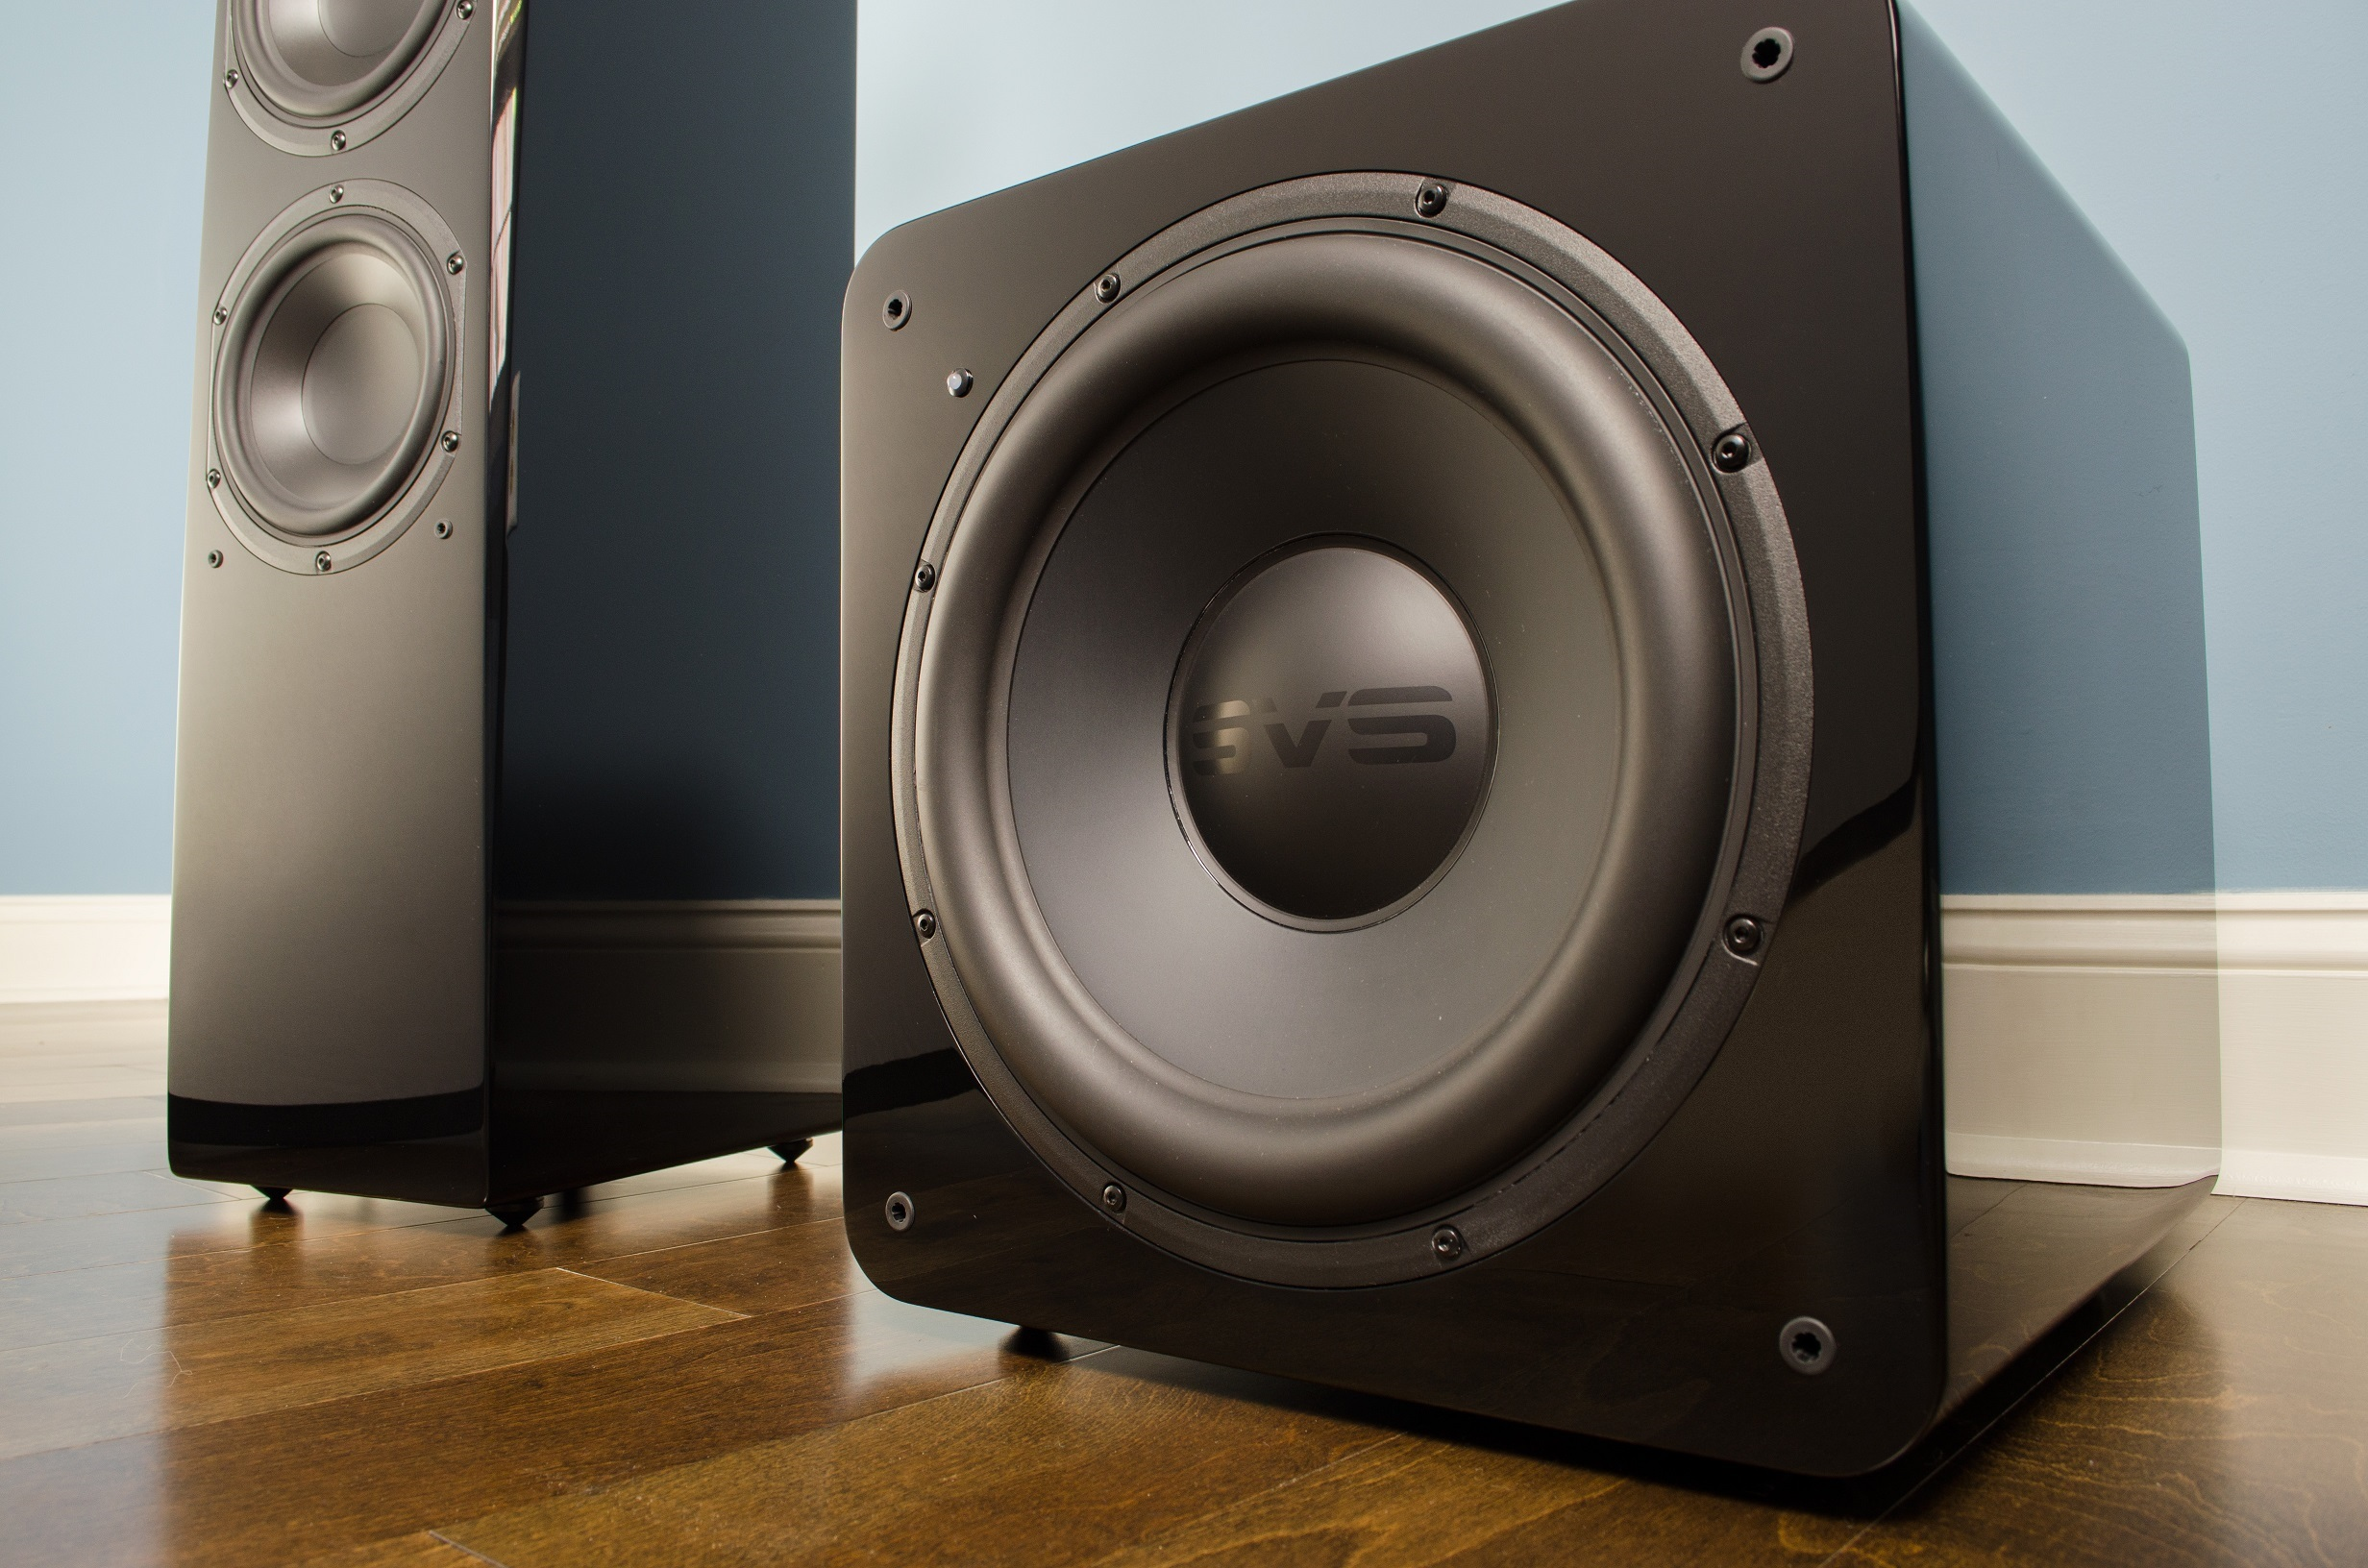 top 5 subwoofer placement tips from svs sound experts novo audio rh novo press Bose Subwoofer Location Ideal Subwoofer Placement